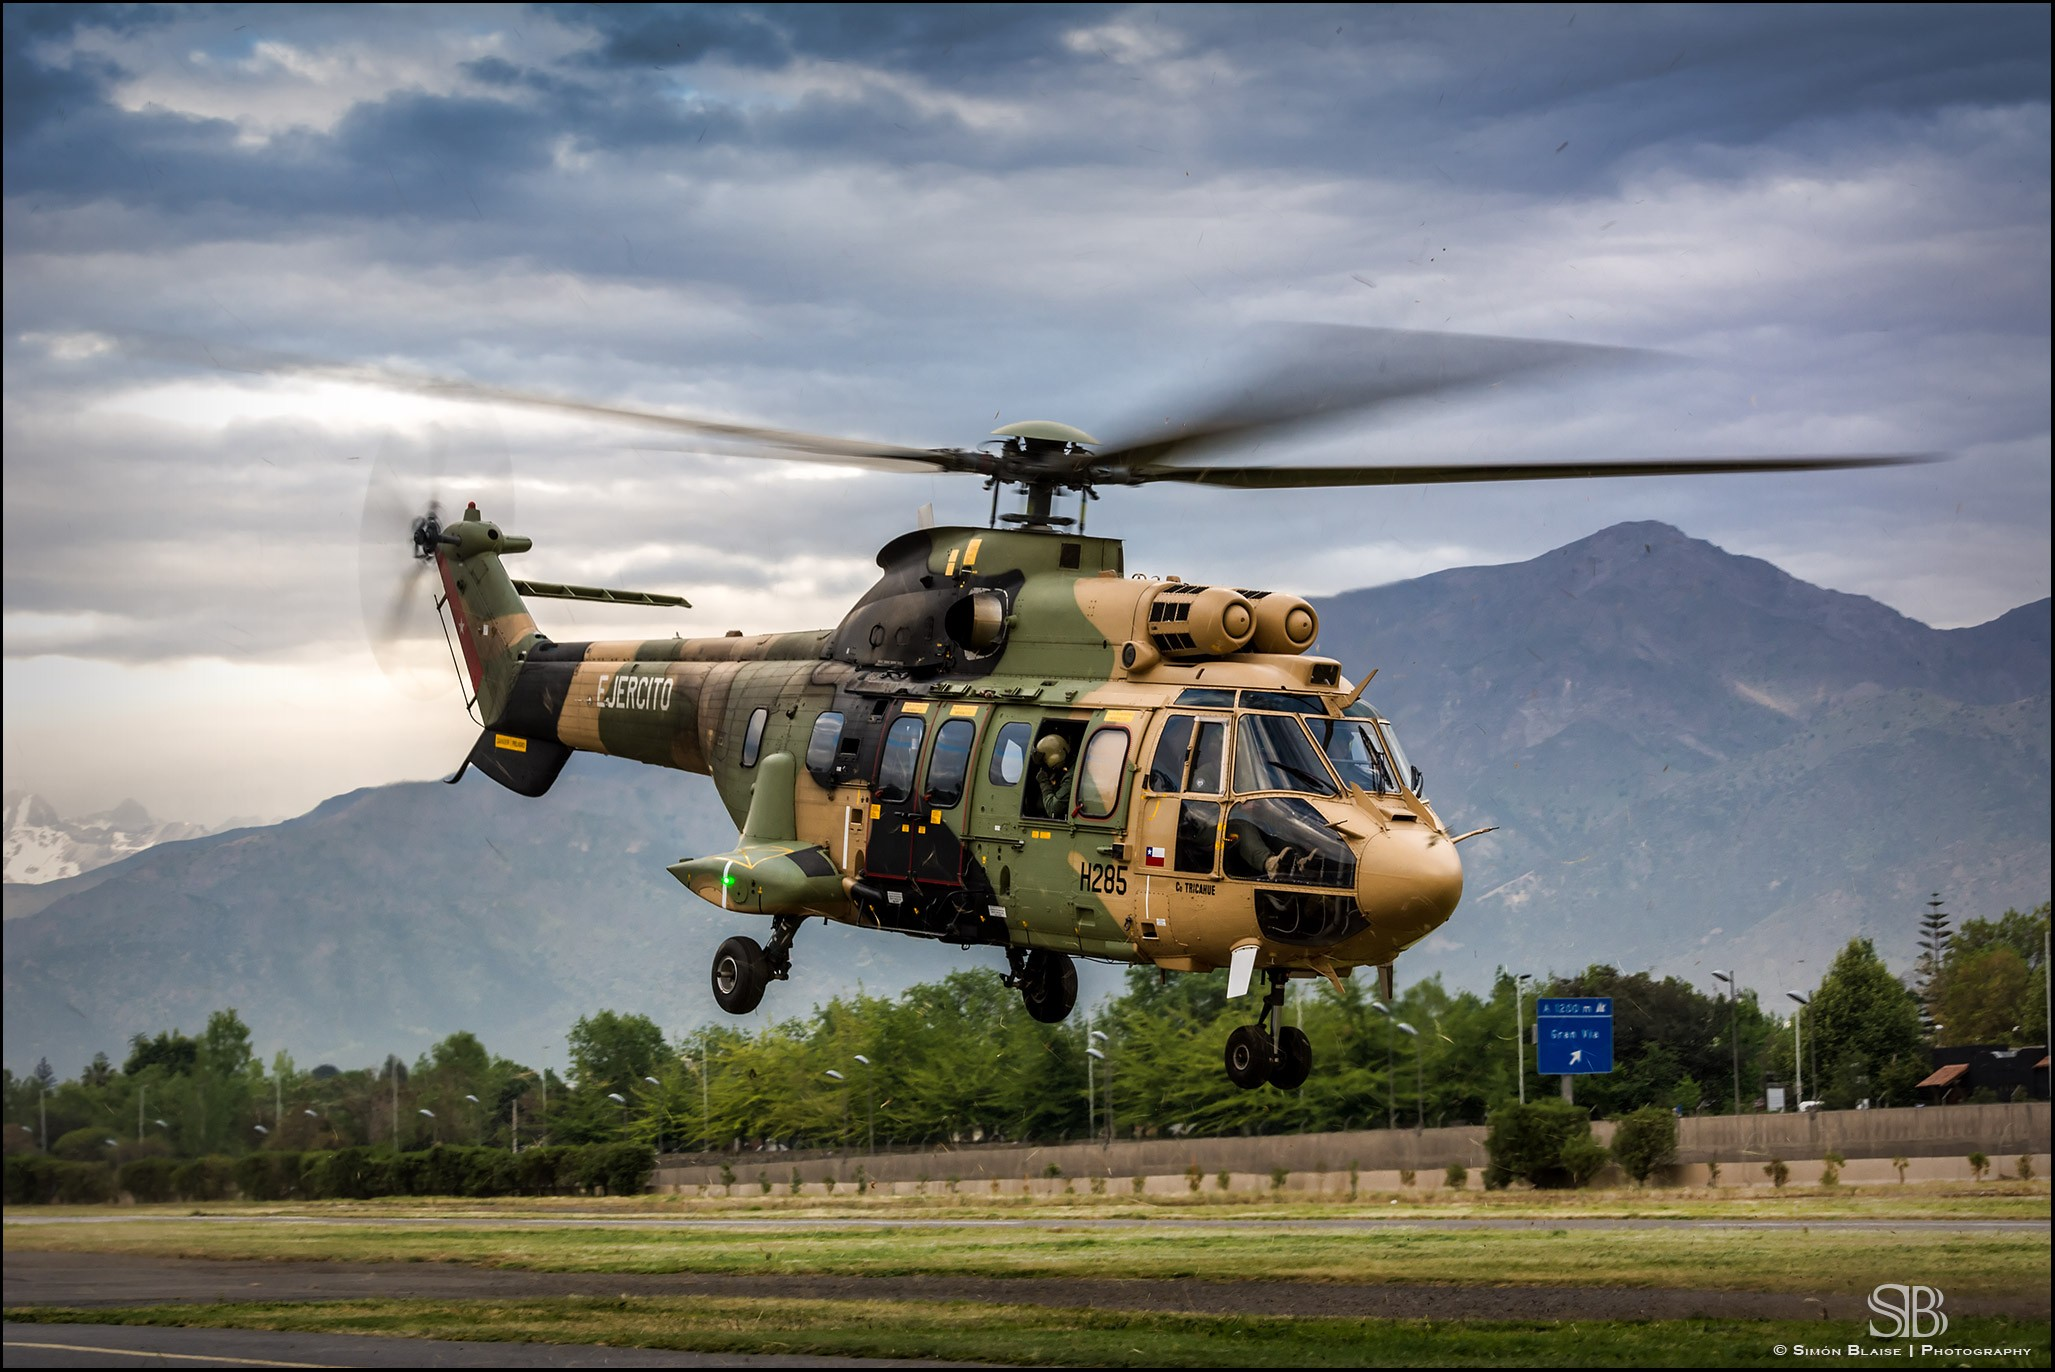 Fall Wallpaper For Tablet Wallpaper As 532al Cougar Military Transport Helicopter